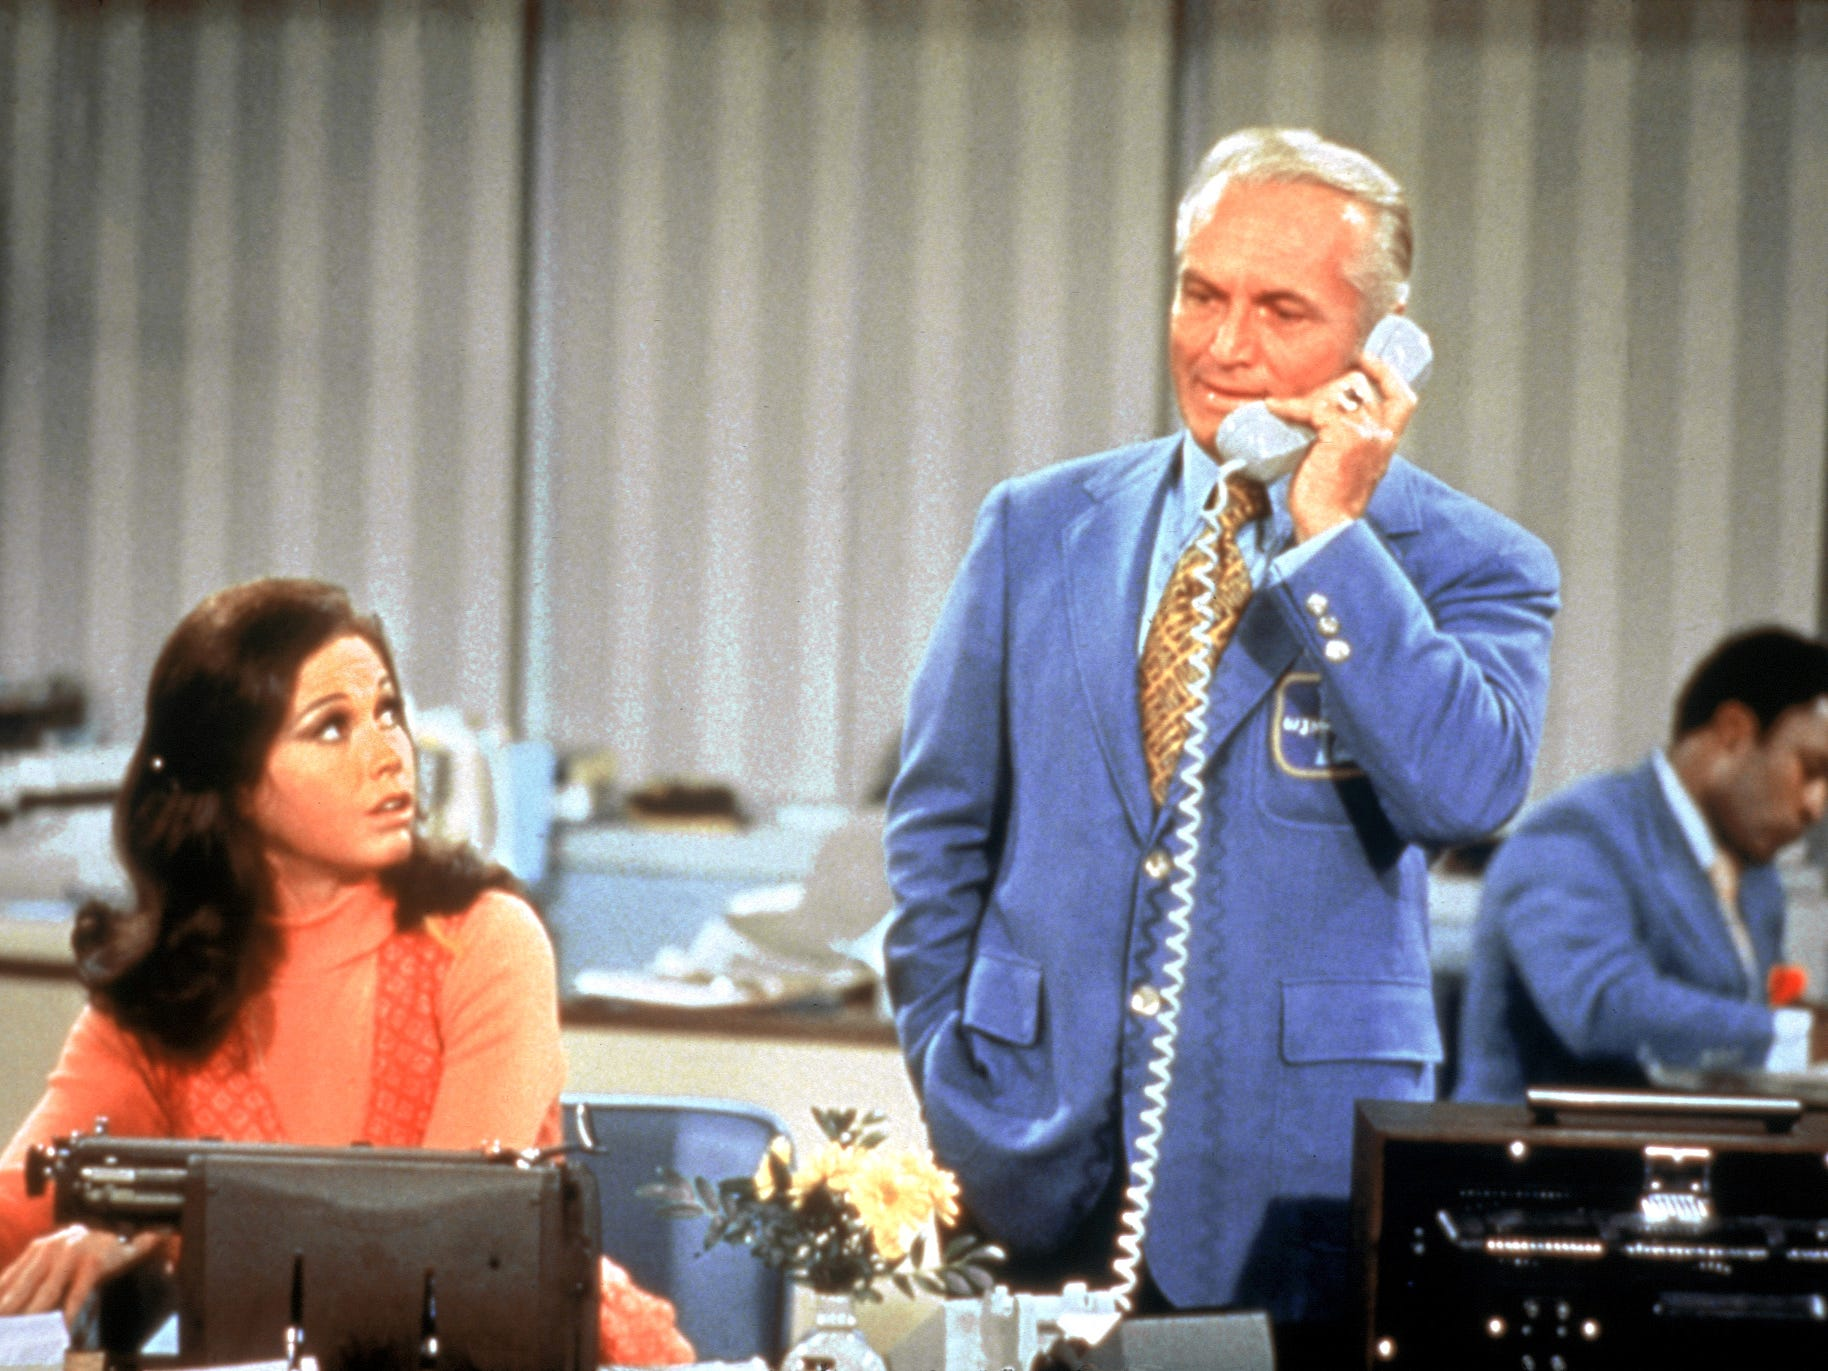 Mary Tyler Moore and Ted Knight make it onto DVD. One of the most celebrated casts of all time reunite as Fox Home Entertainment salutes The Mary Tyler Moore Show Season One on DVD.  --- DATE TAKEN: rec'd. 9/2002  No Byline   20th Century Fox Home Entertainment , Source: 20th Century Fox        HO      - handout ORG XMIT: PX80352